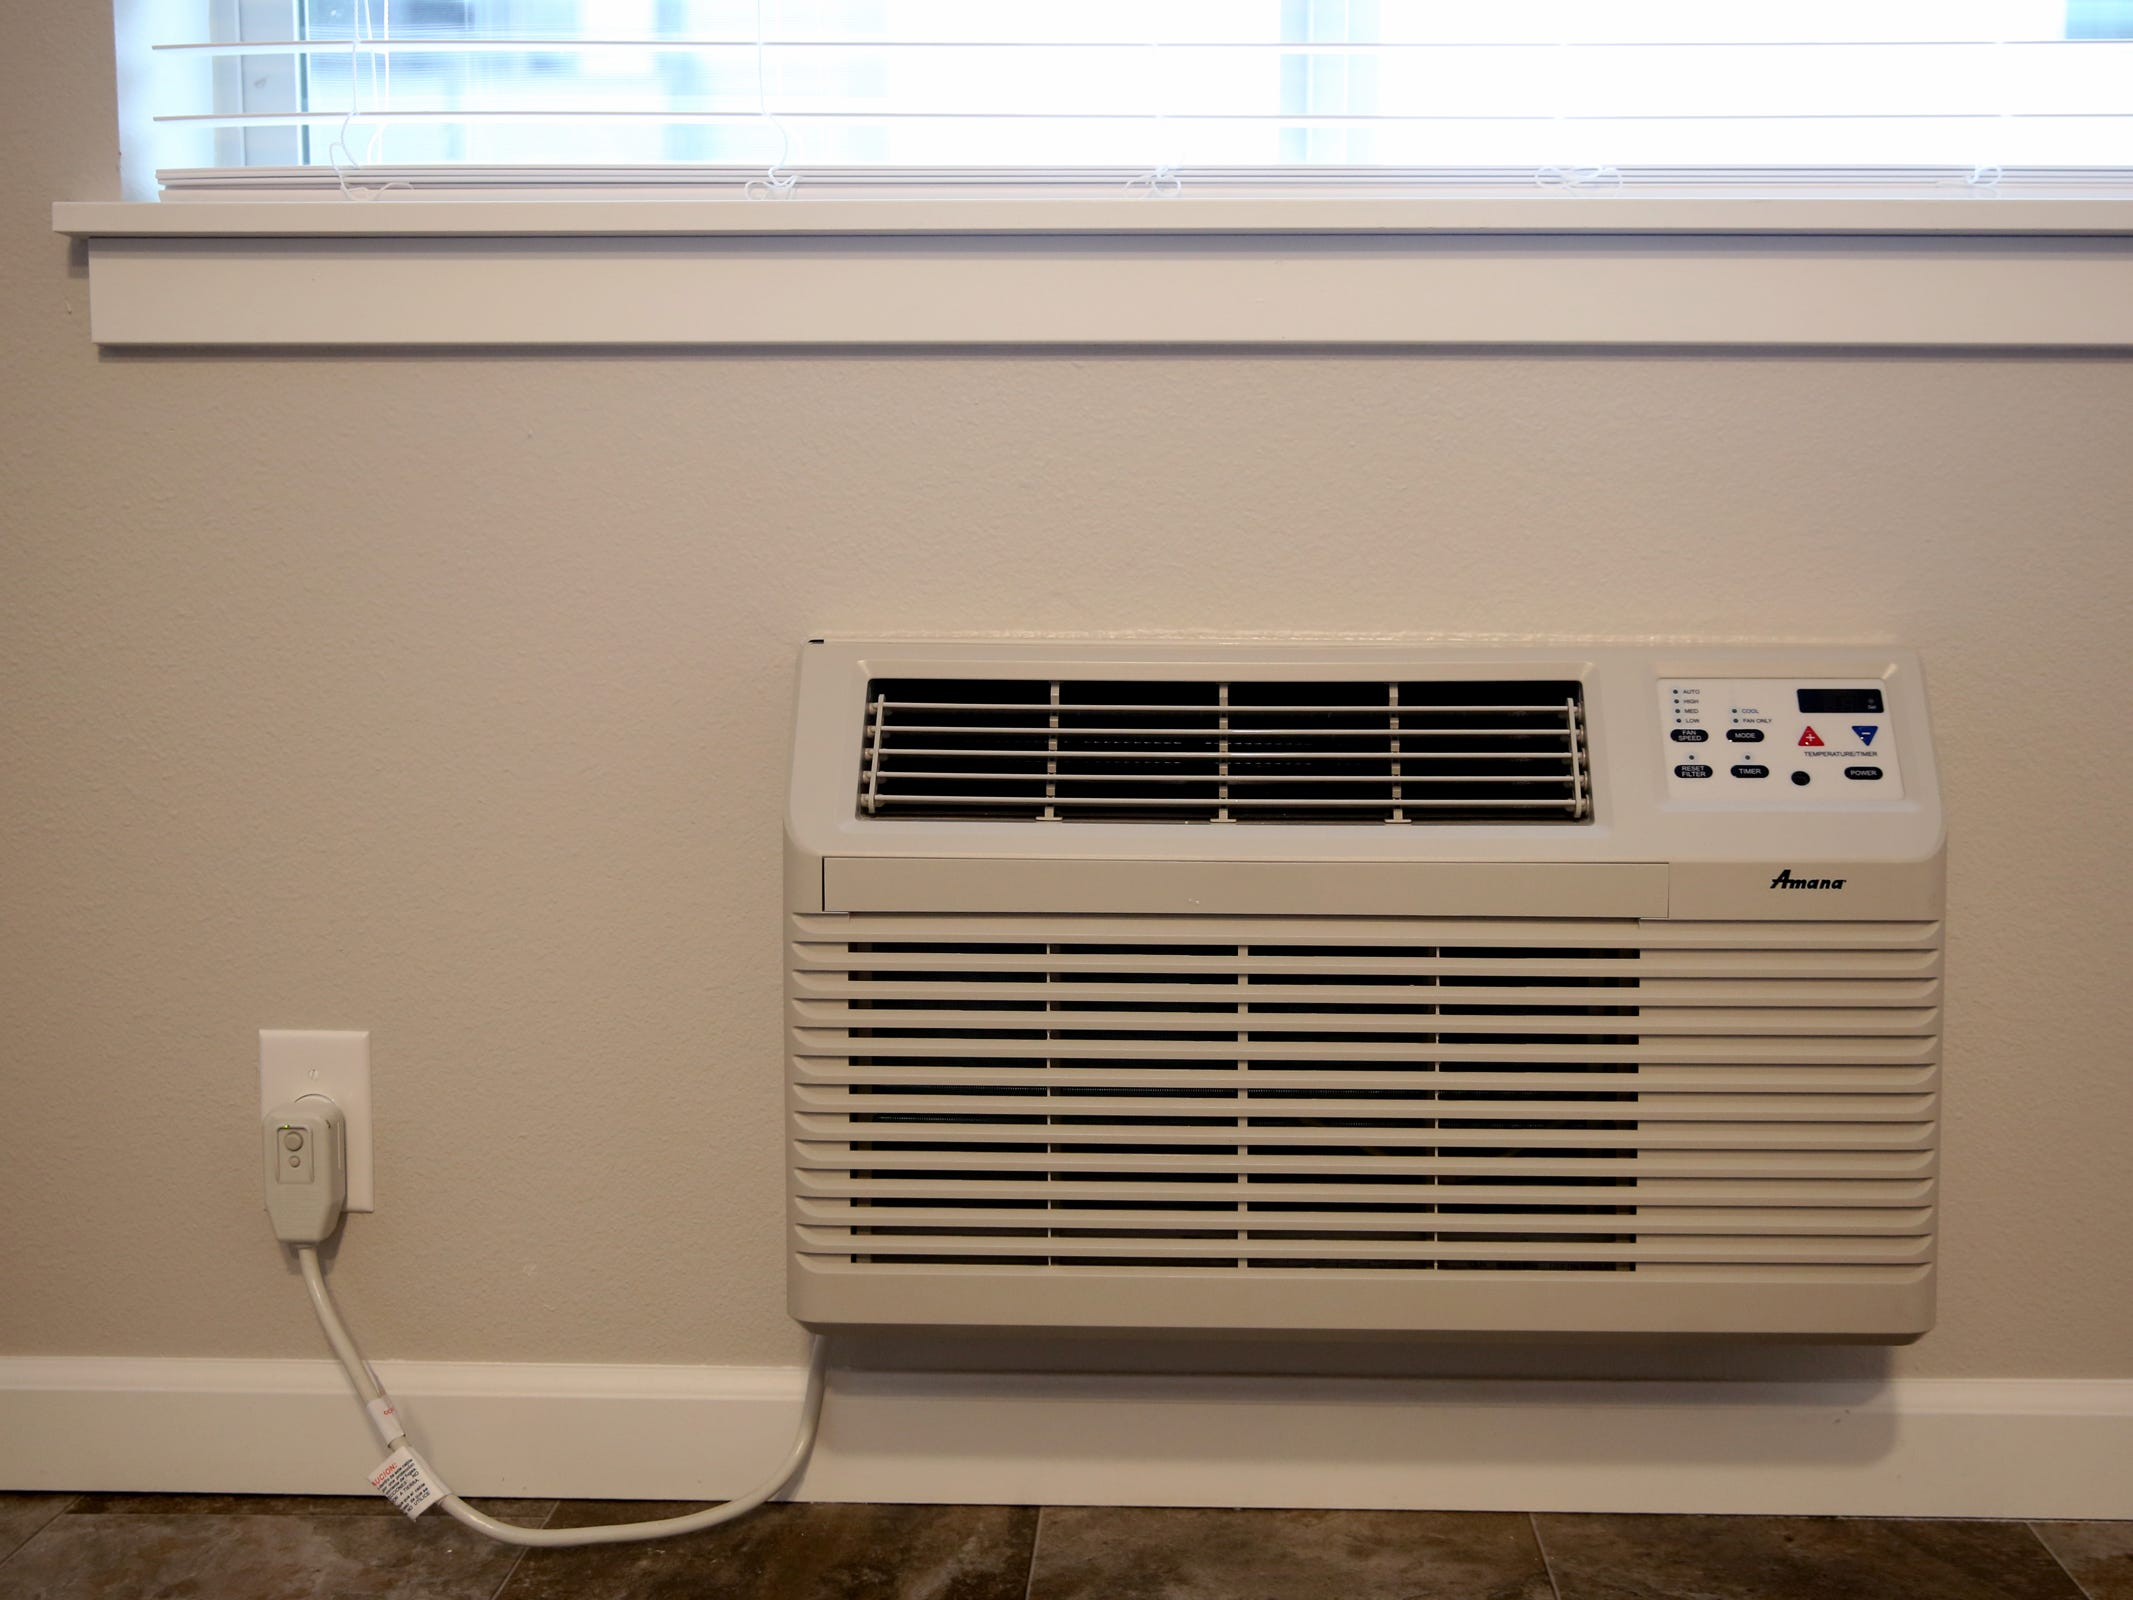 An air conditioning unit at the Cornerstone Apartments in Salem on Wednesday, Jan. 16, 2019. The state is looking to reduce the energy burden for low-income Oregonians, including tenants at Cornerstone, who must live at or less than 60 percent of the area's median household income.